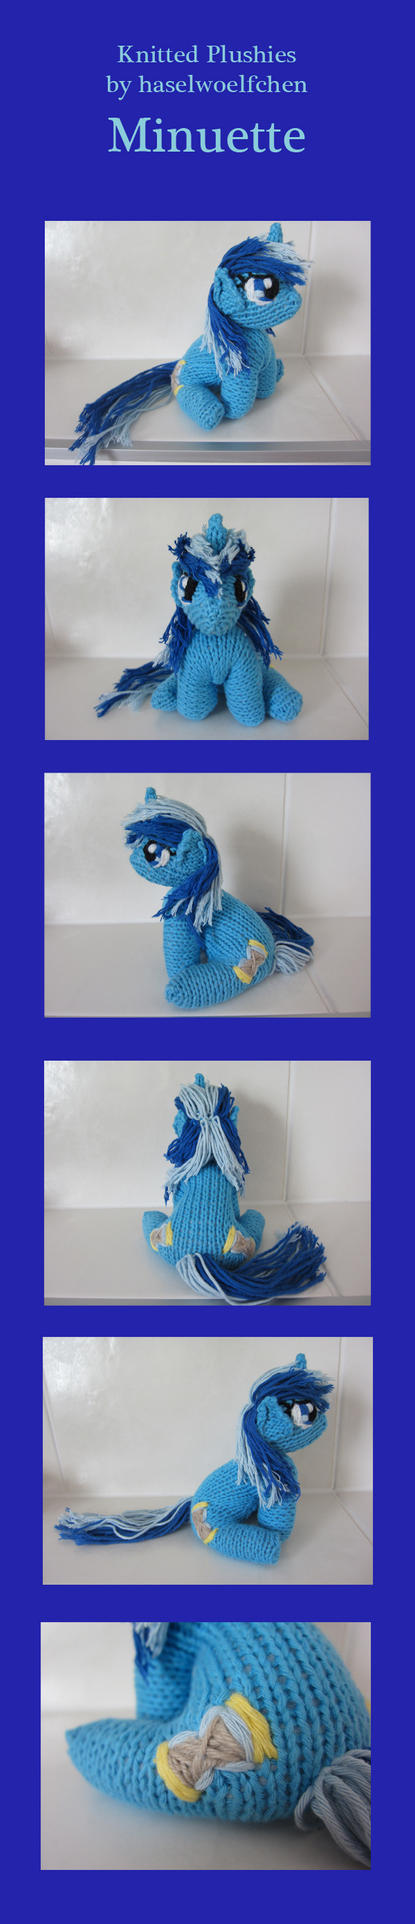 Knitted Plushies - Minuette by haselwoelfchen